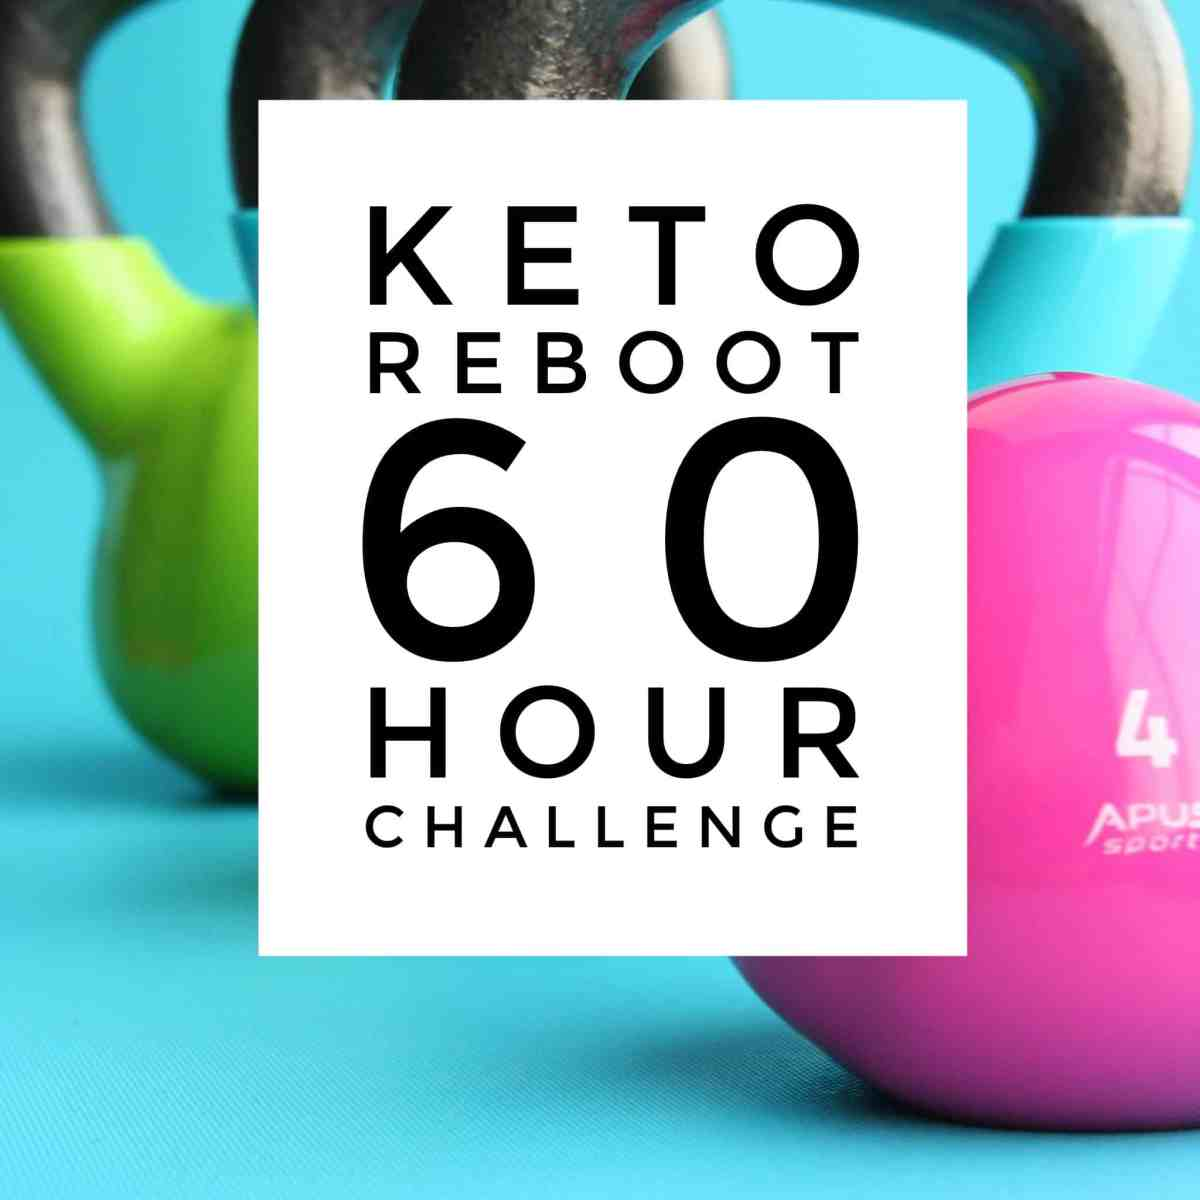 Take the KETO Reboot 60 Hour Challenge!